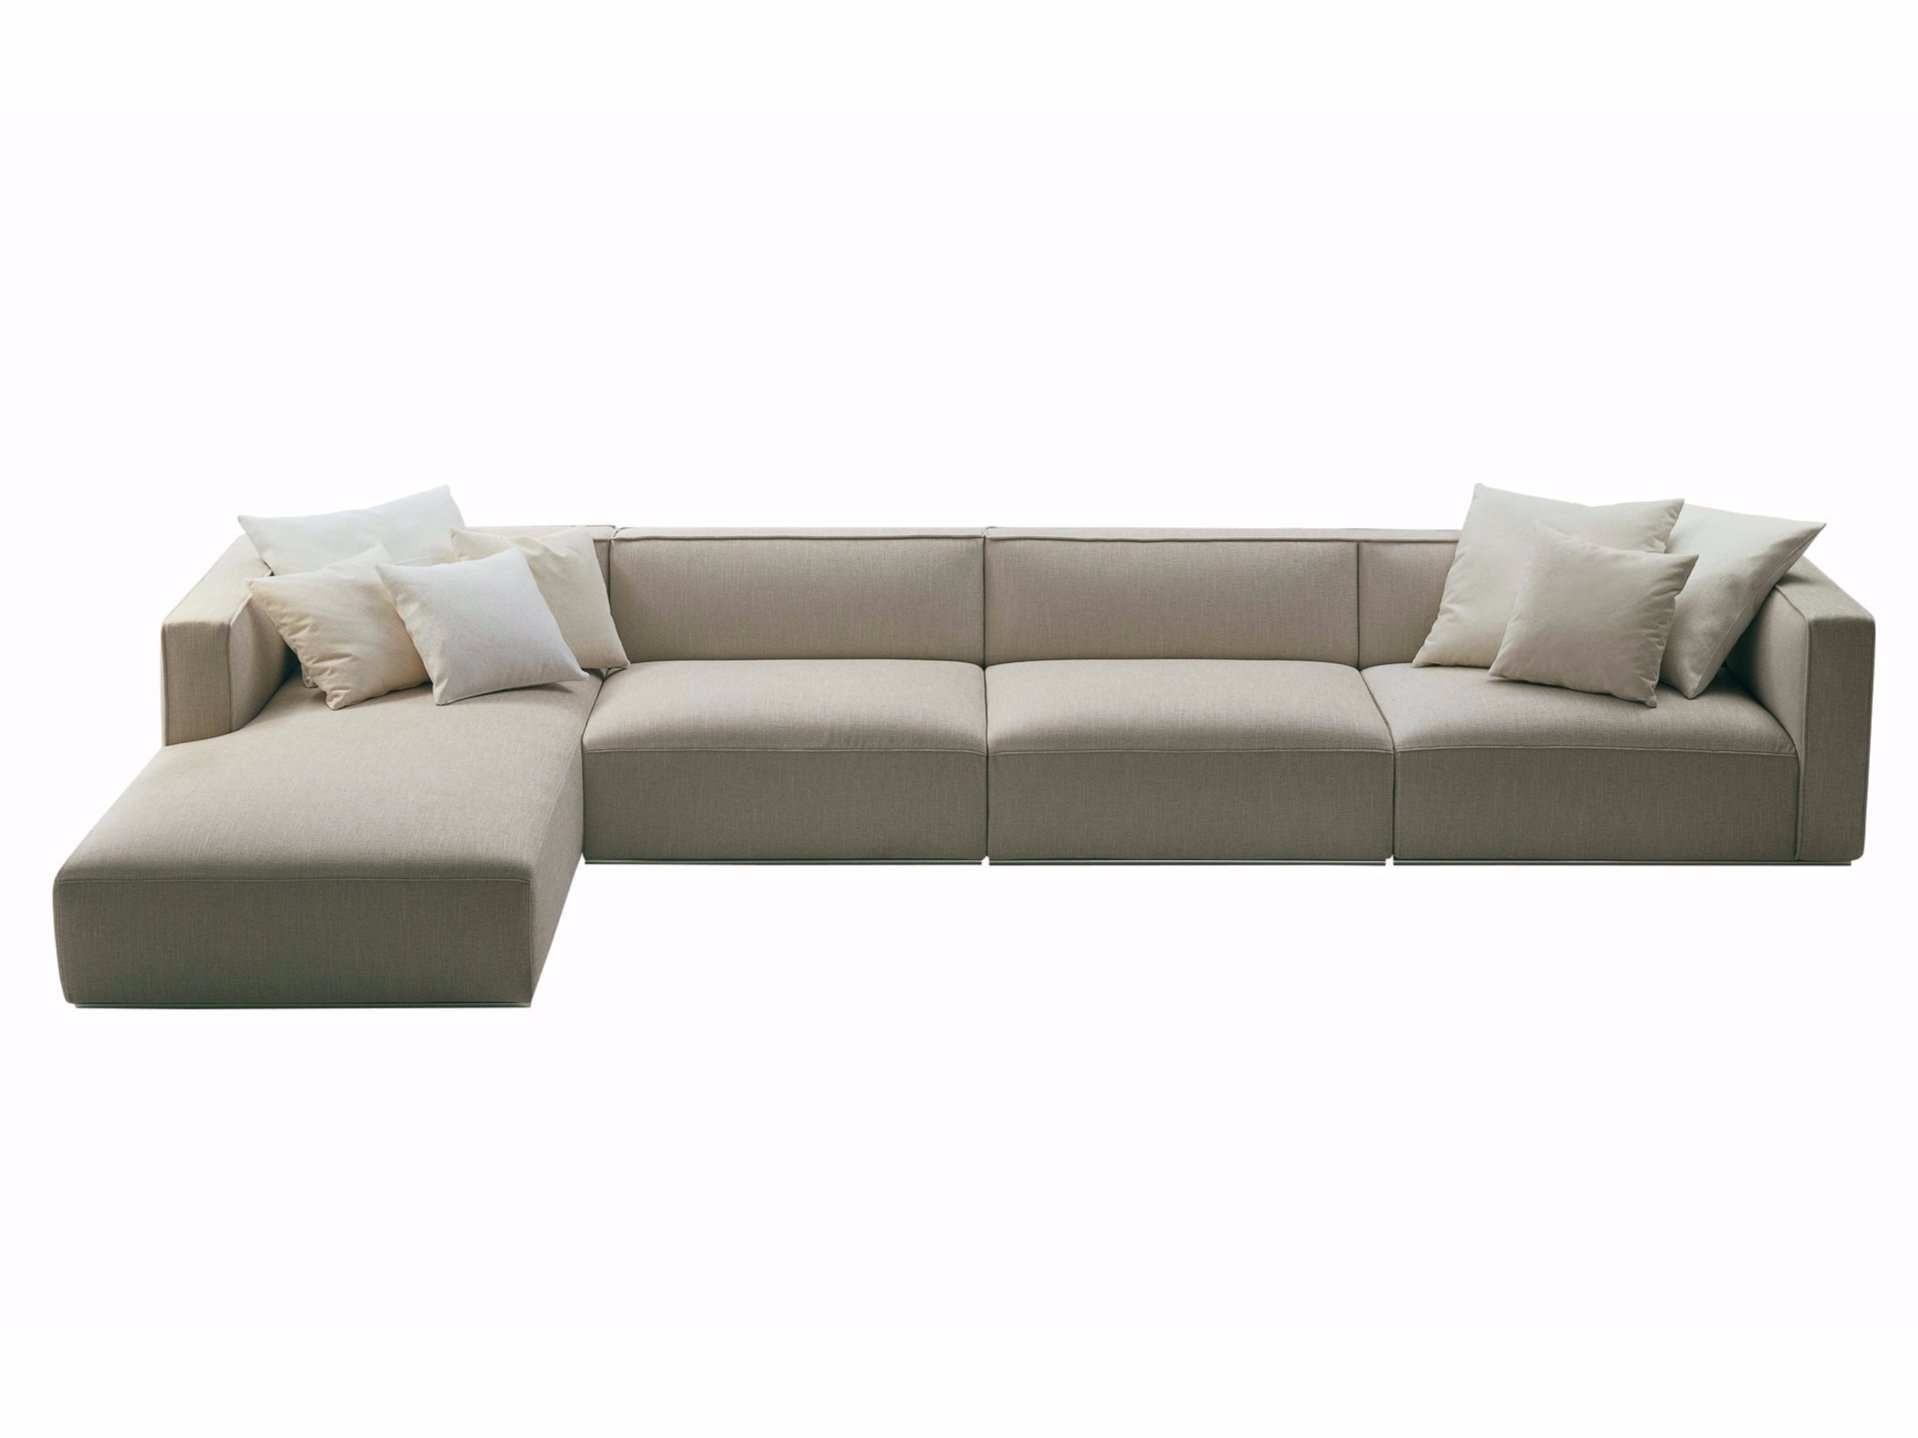 Shangai sofa with chaise longue shangai collection by for Sofa chaise longue